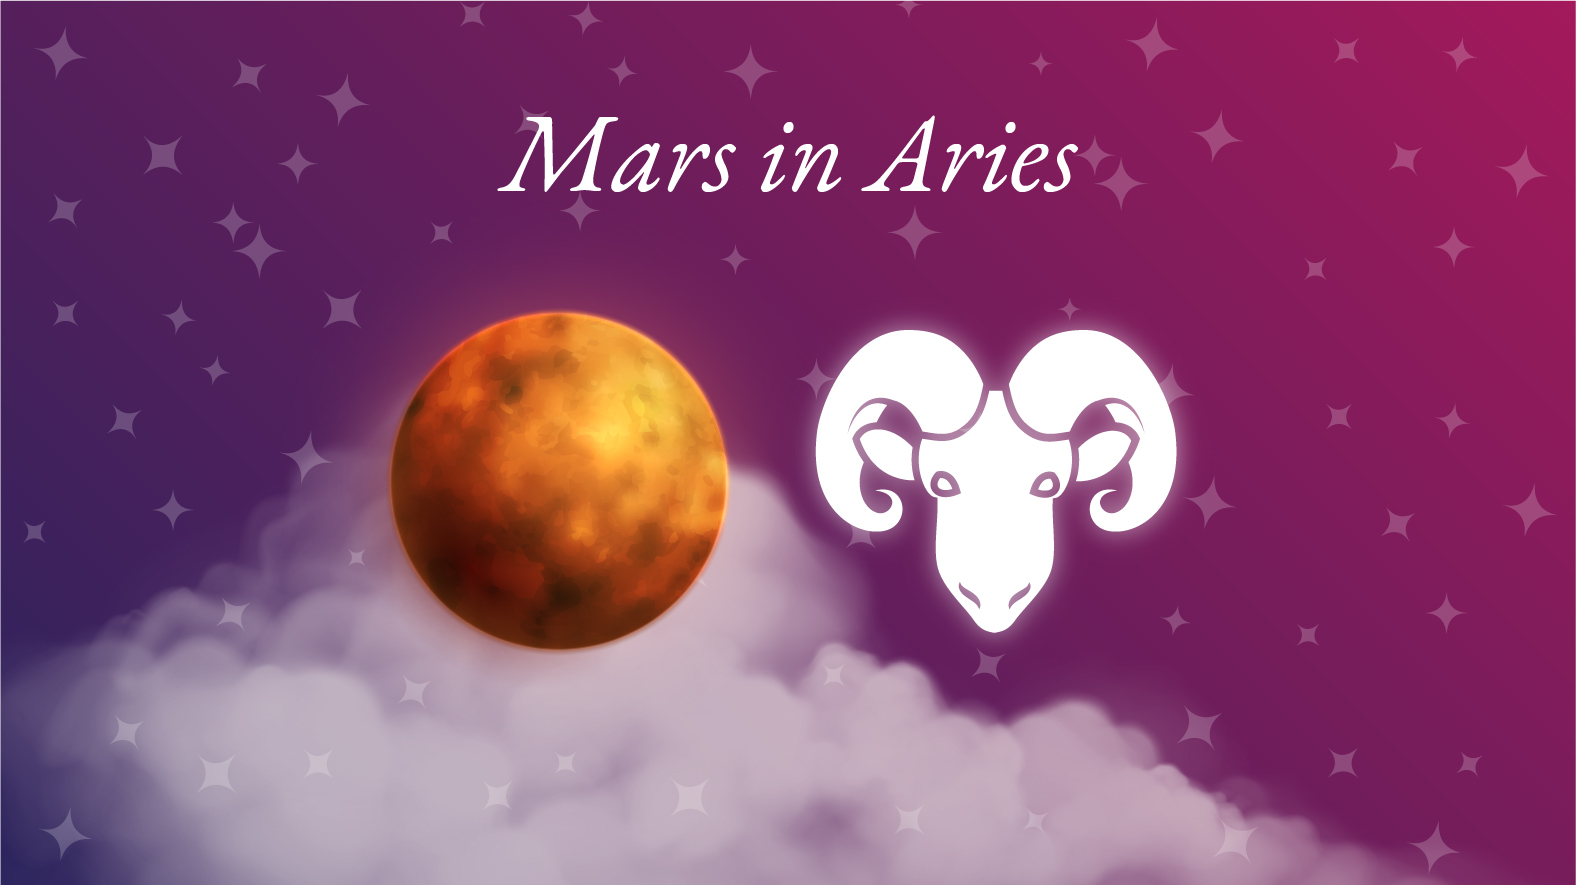 Mars in Aries Meaning